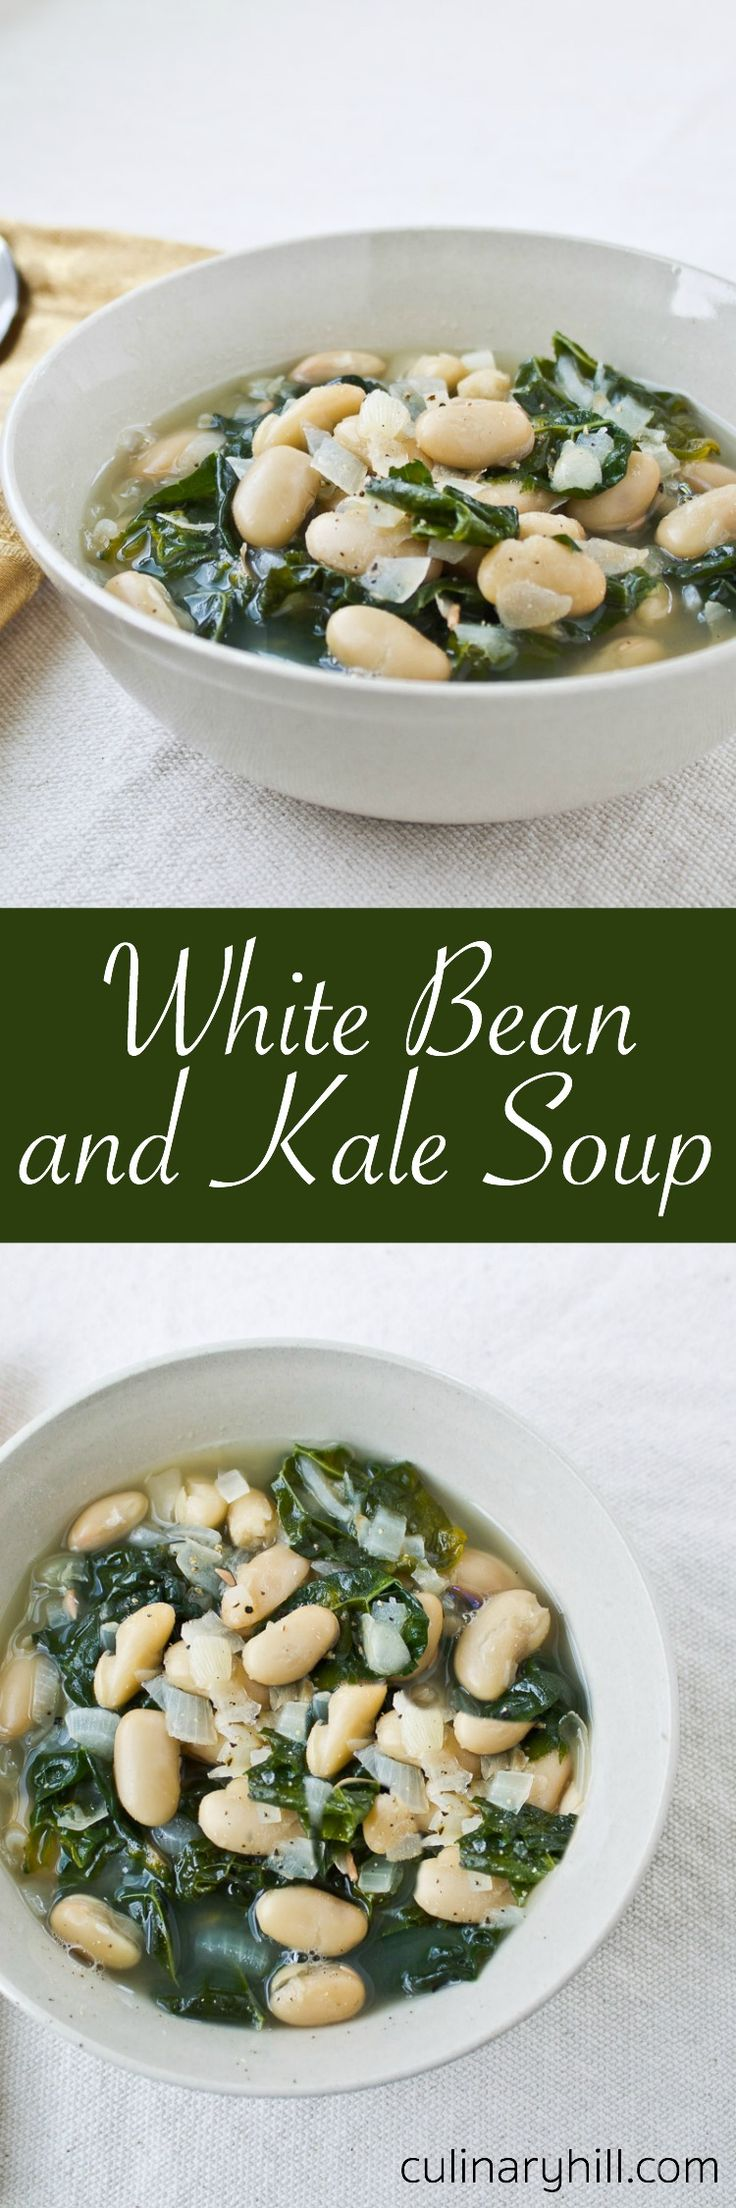 Jump-start your healthful eating habits with my easy White Bean and Kale Soup. It only takes 7 ingredients and 30 minutes. Use vegetable broth for an easy vegan option!